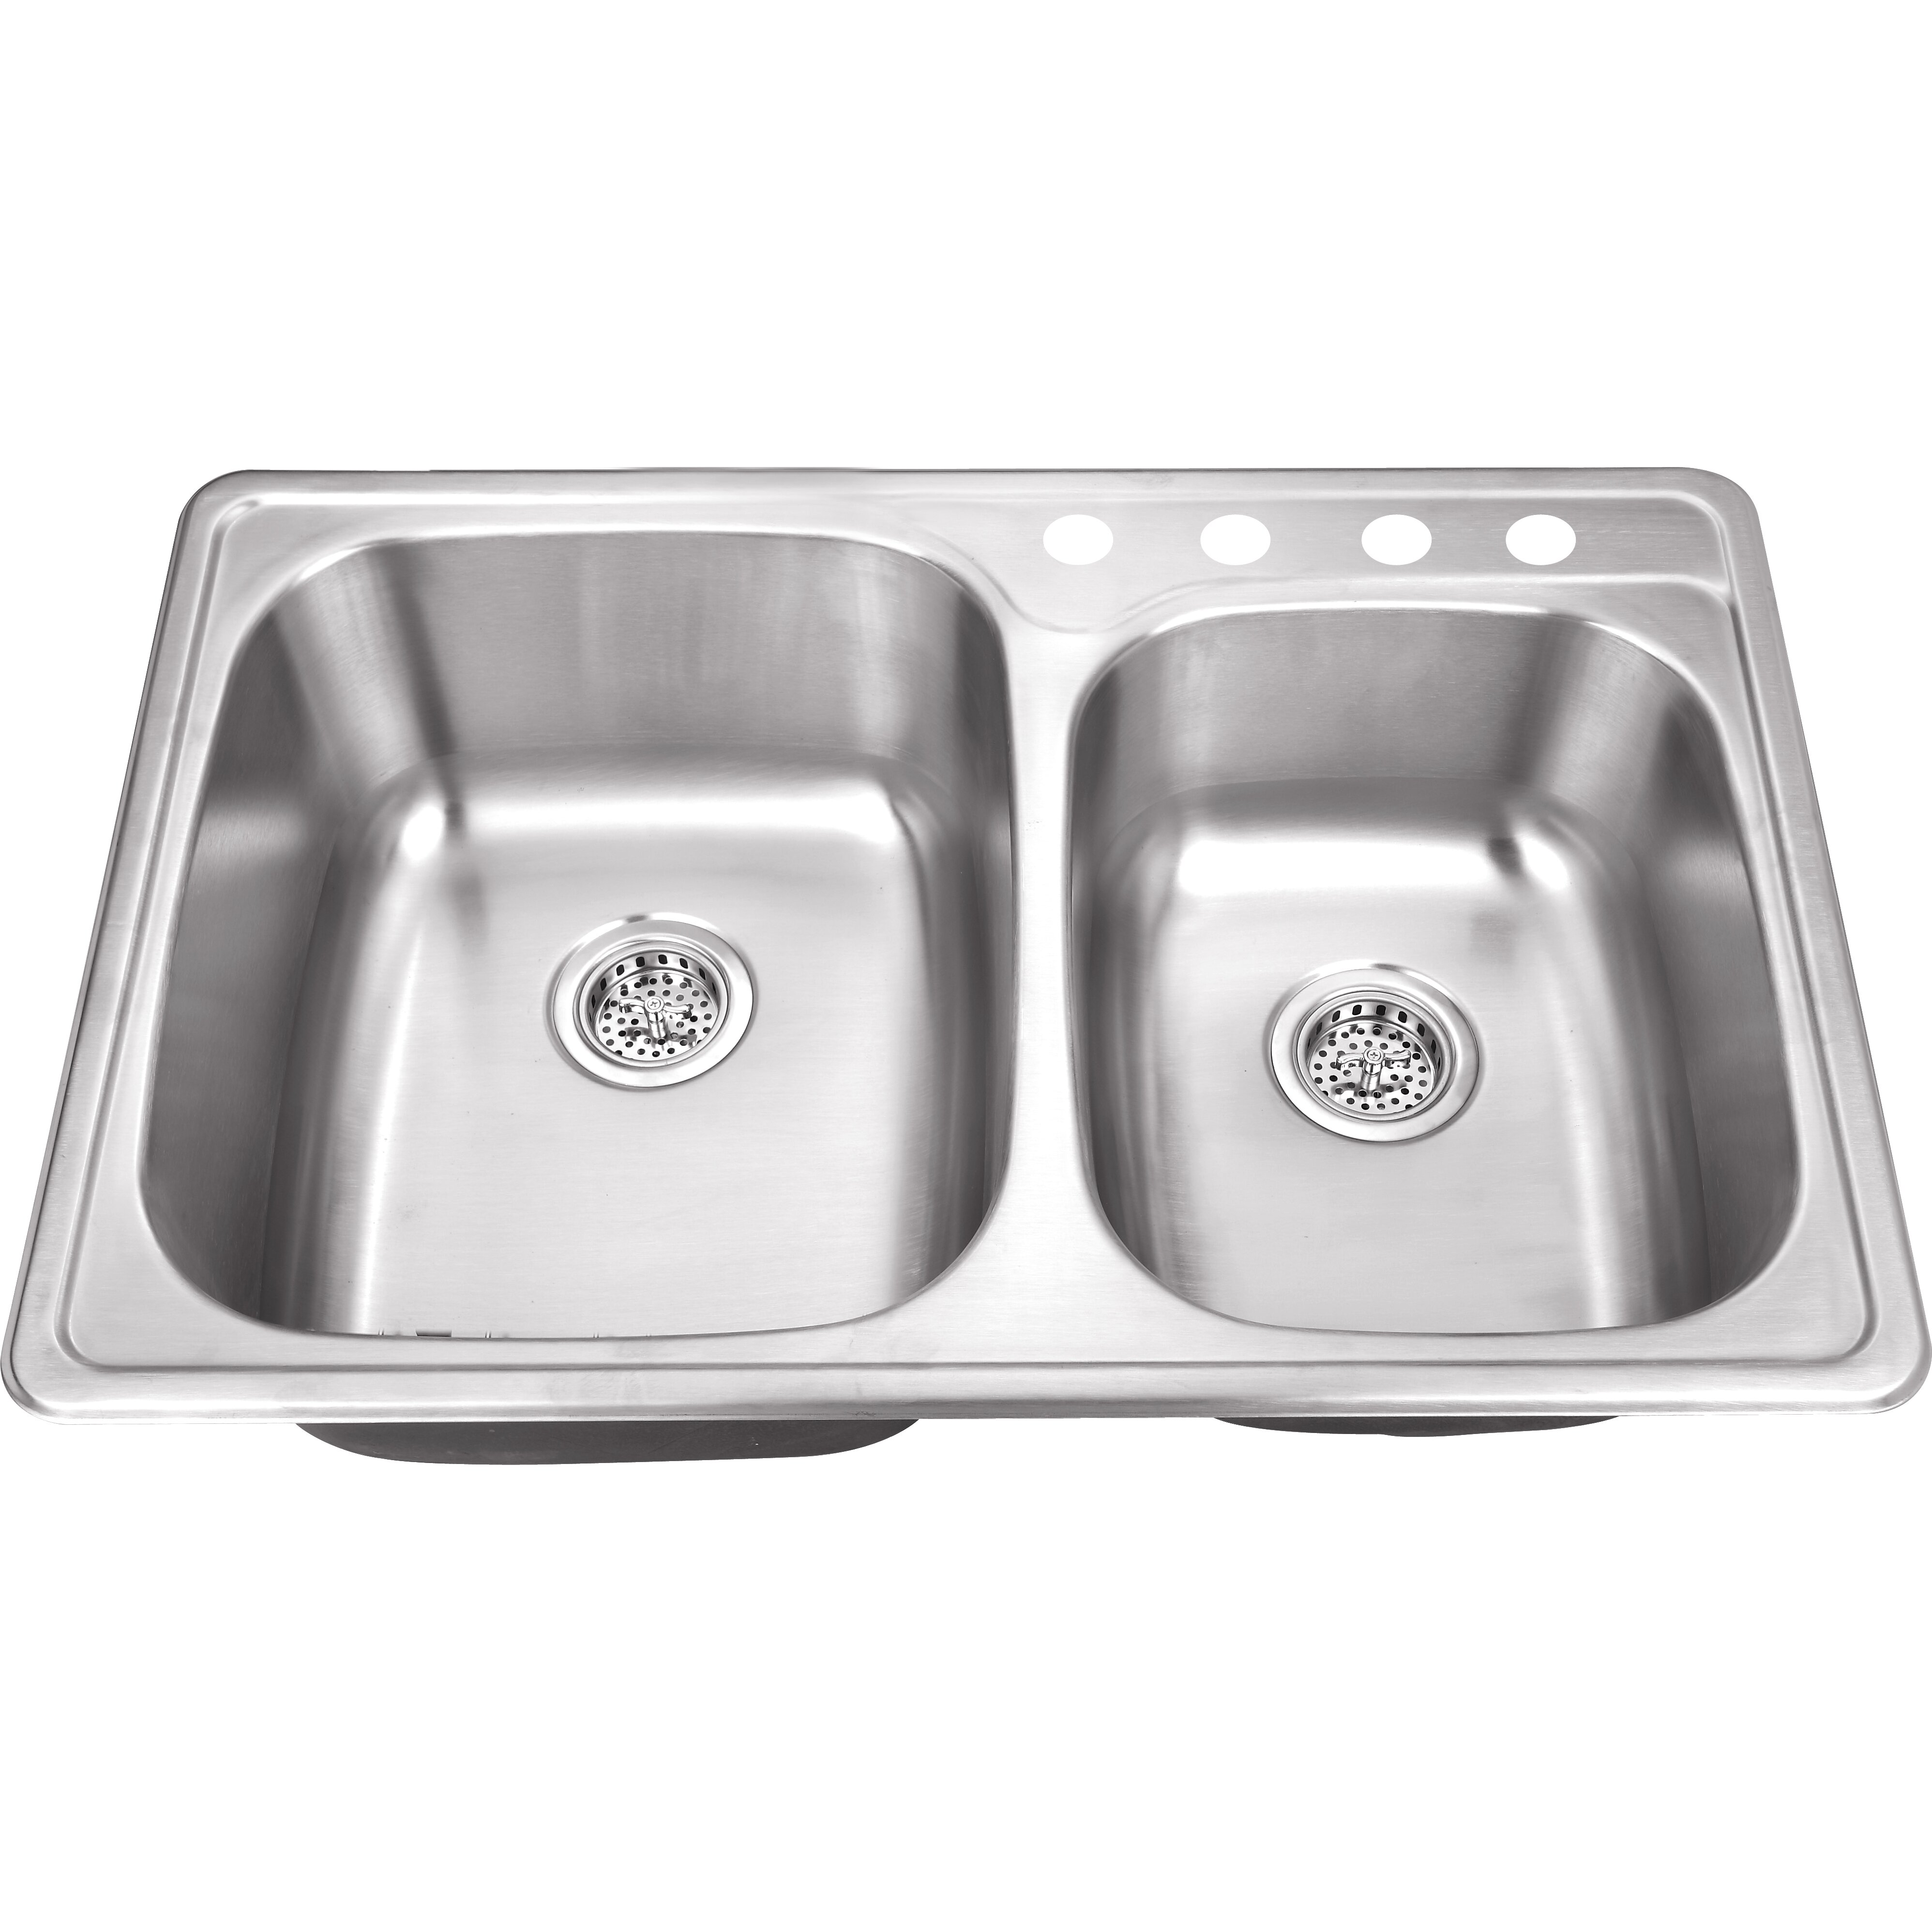 "Drop In Stainless Steel Kitchen Sinks: Soleil 33"" X 22"" Stainless Steel Drop In Double Bowl"